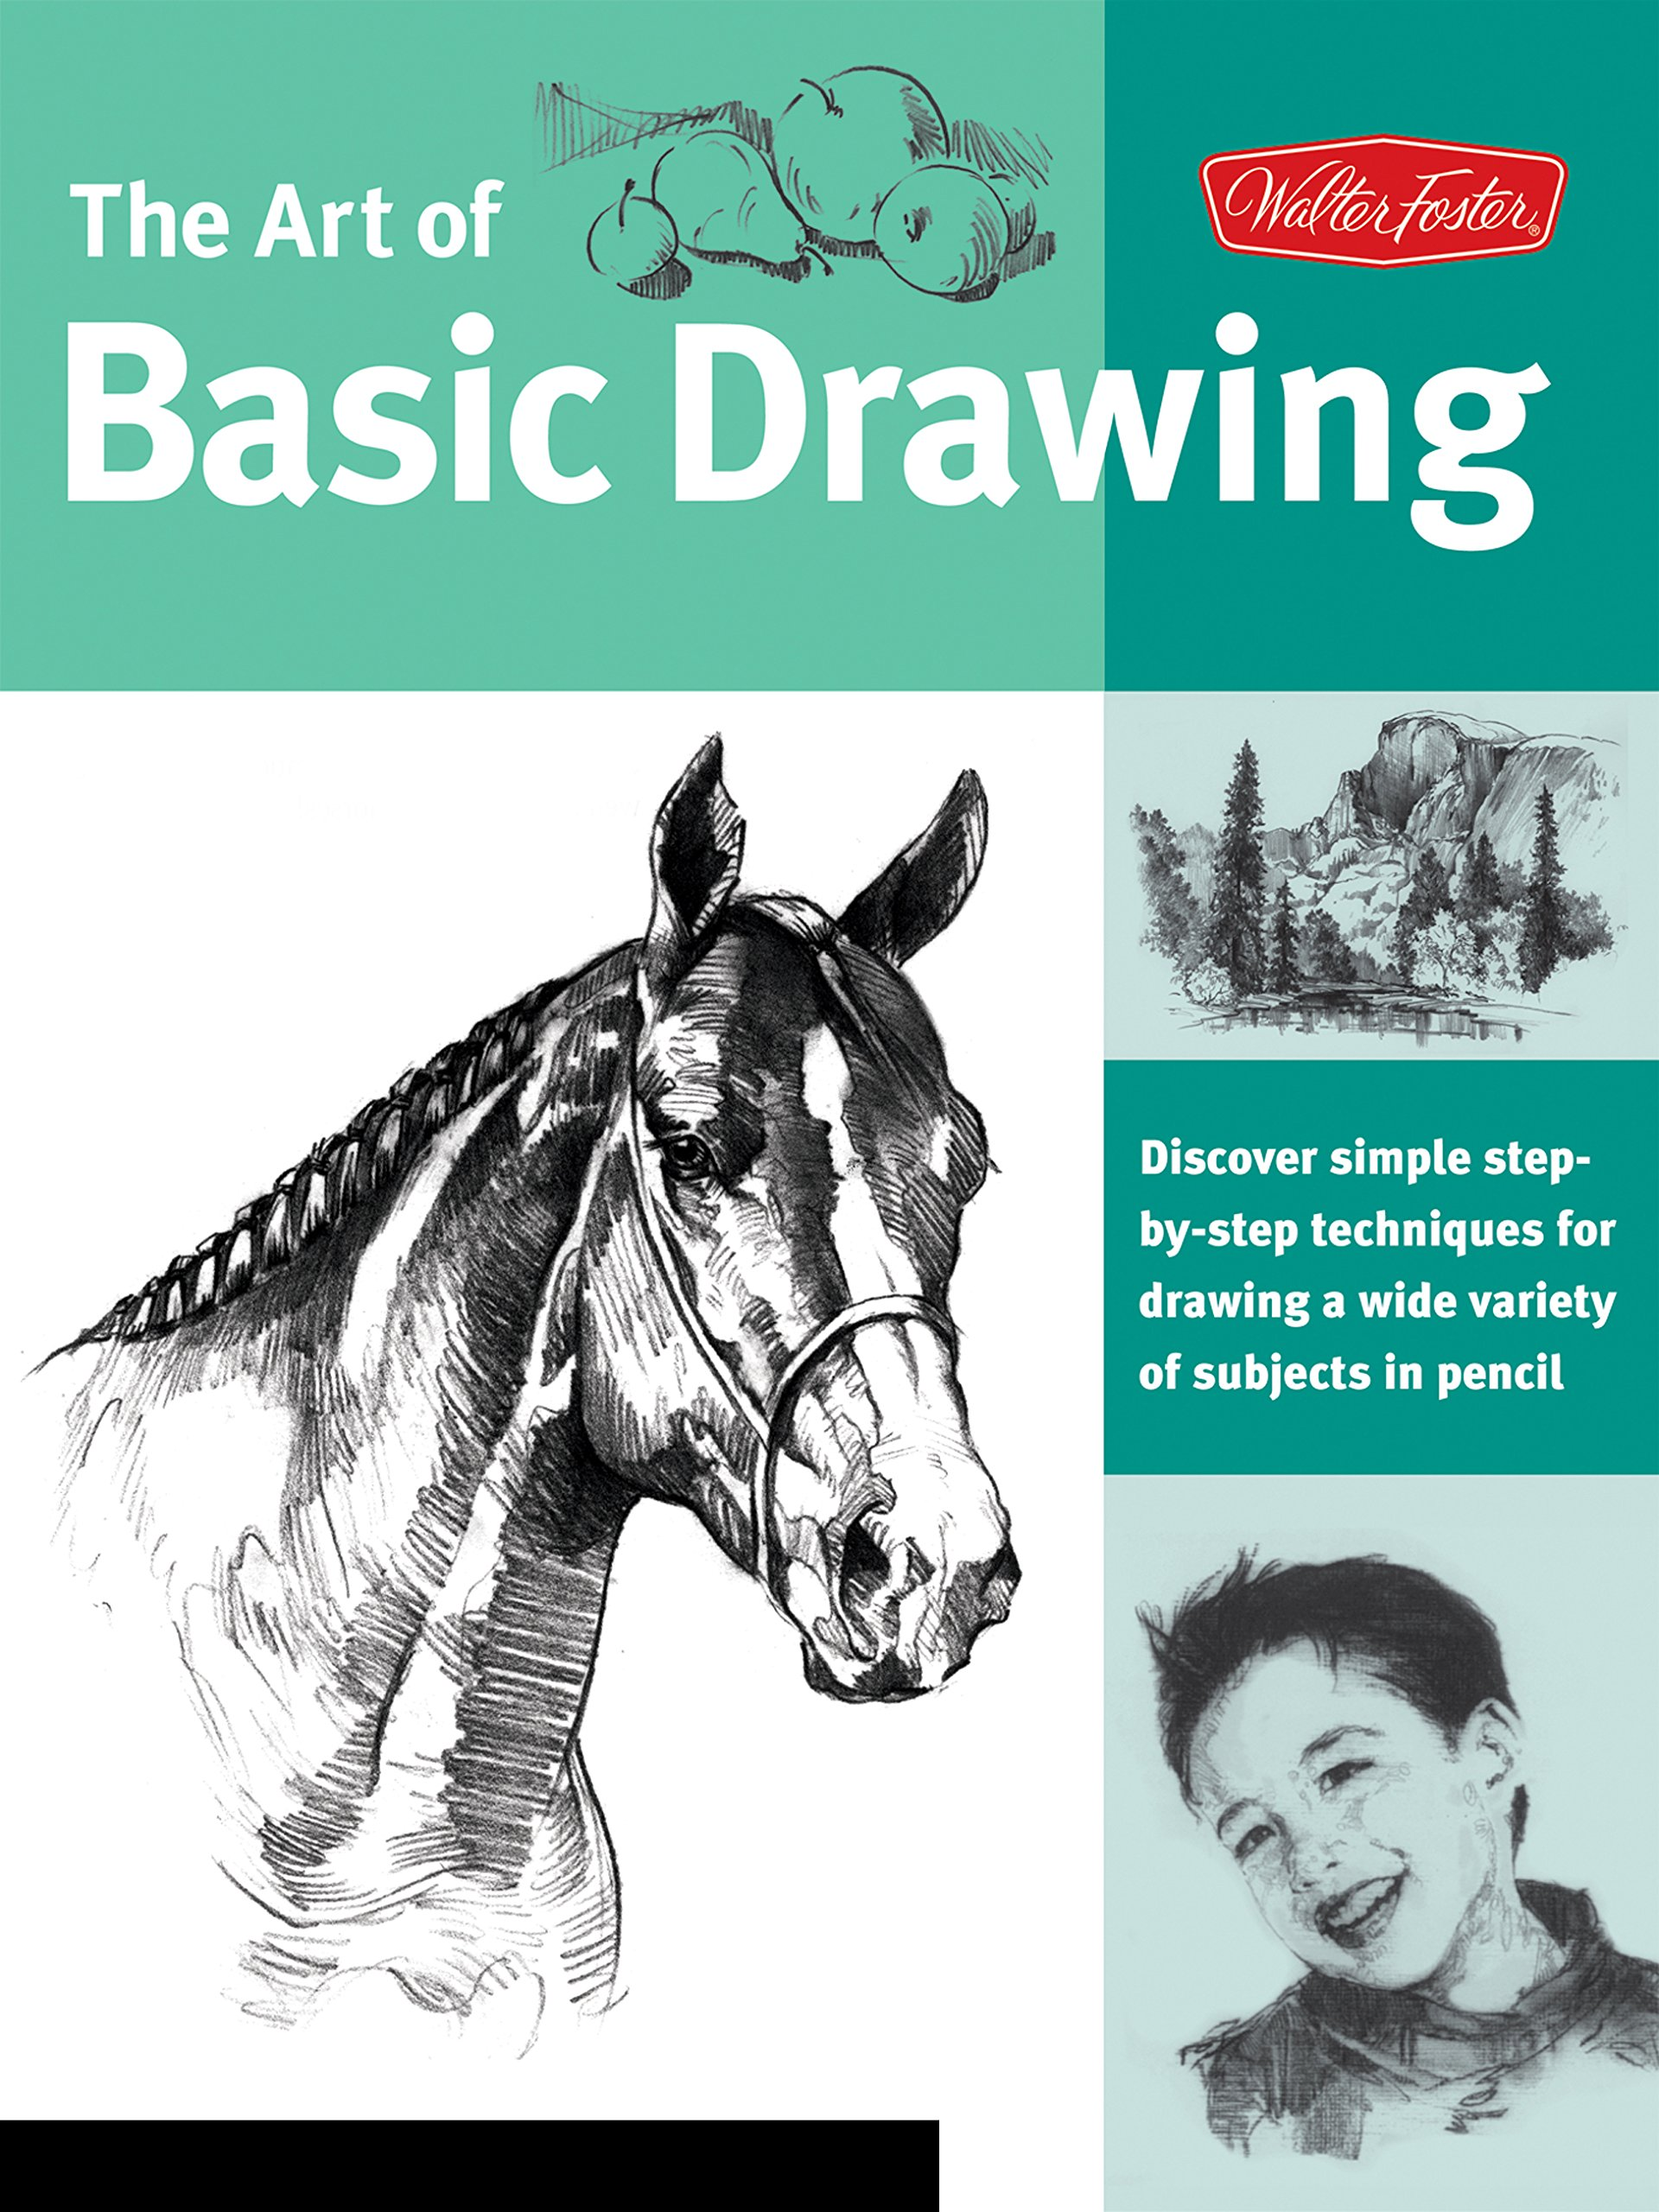 Art of Basic Drawing: Discover simple step-by-step techniques for drawing a wide variety of subjects in pencil (Collector's Series) ebook